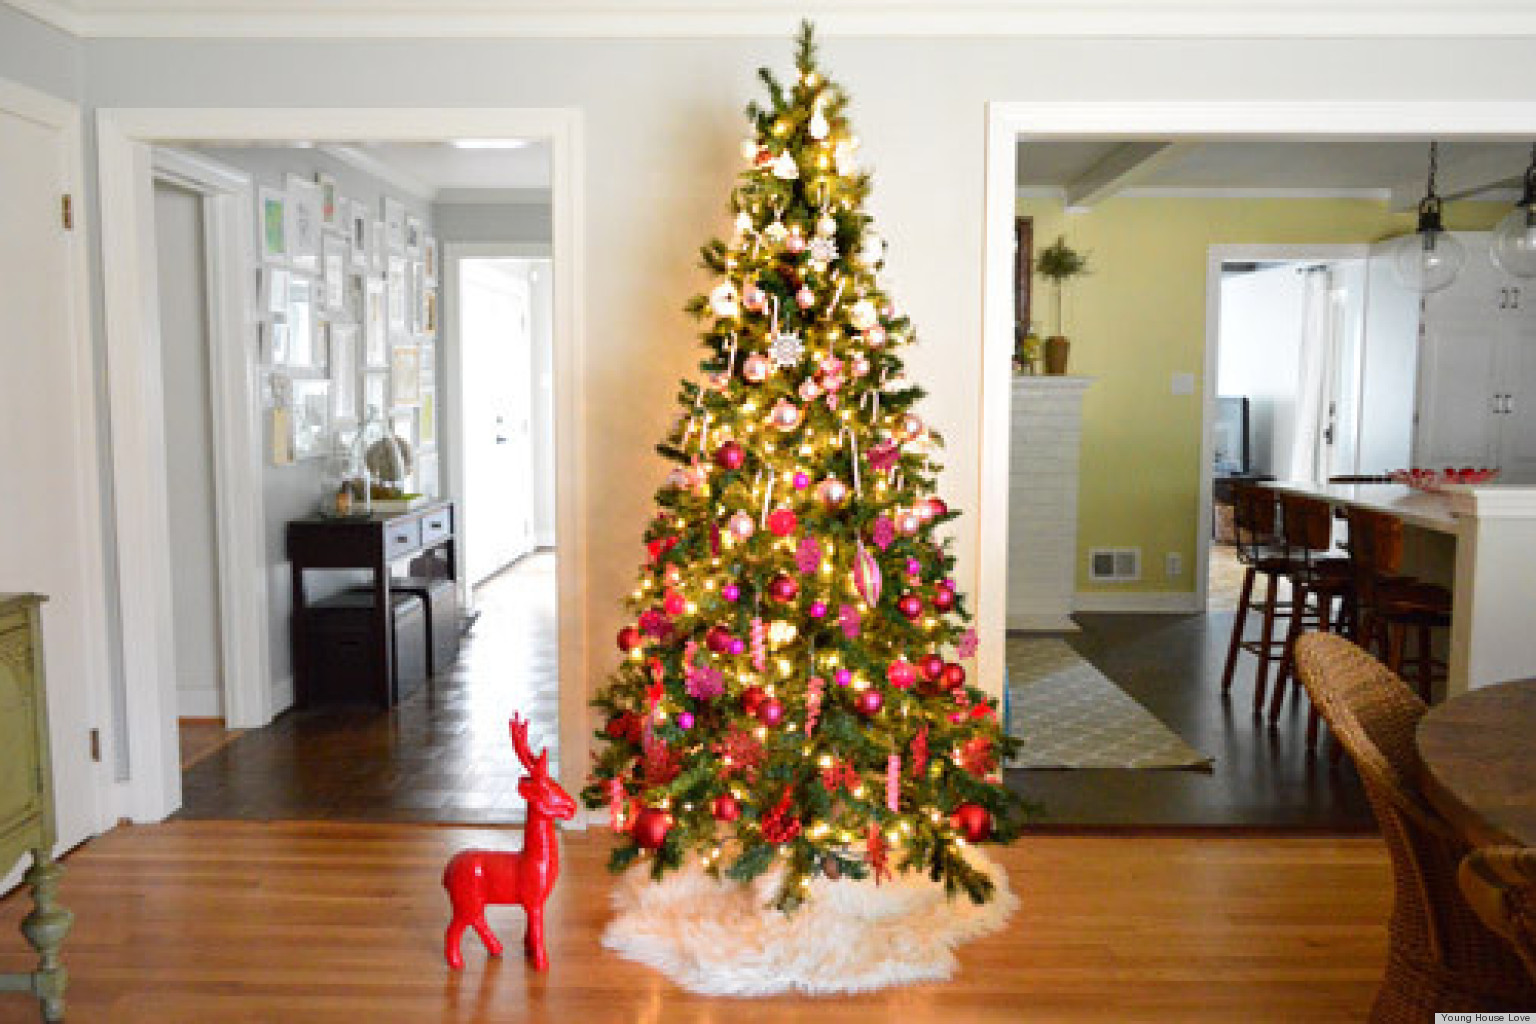 Christmas tree decorating ideas an ombre design from Ideas for decorating a christmas tree